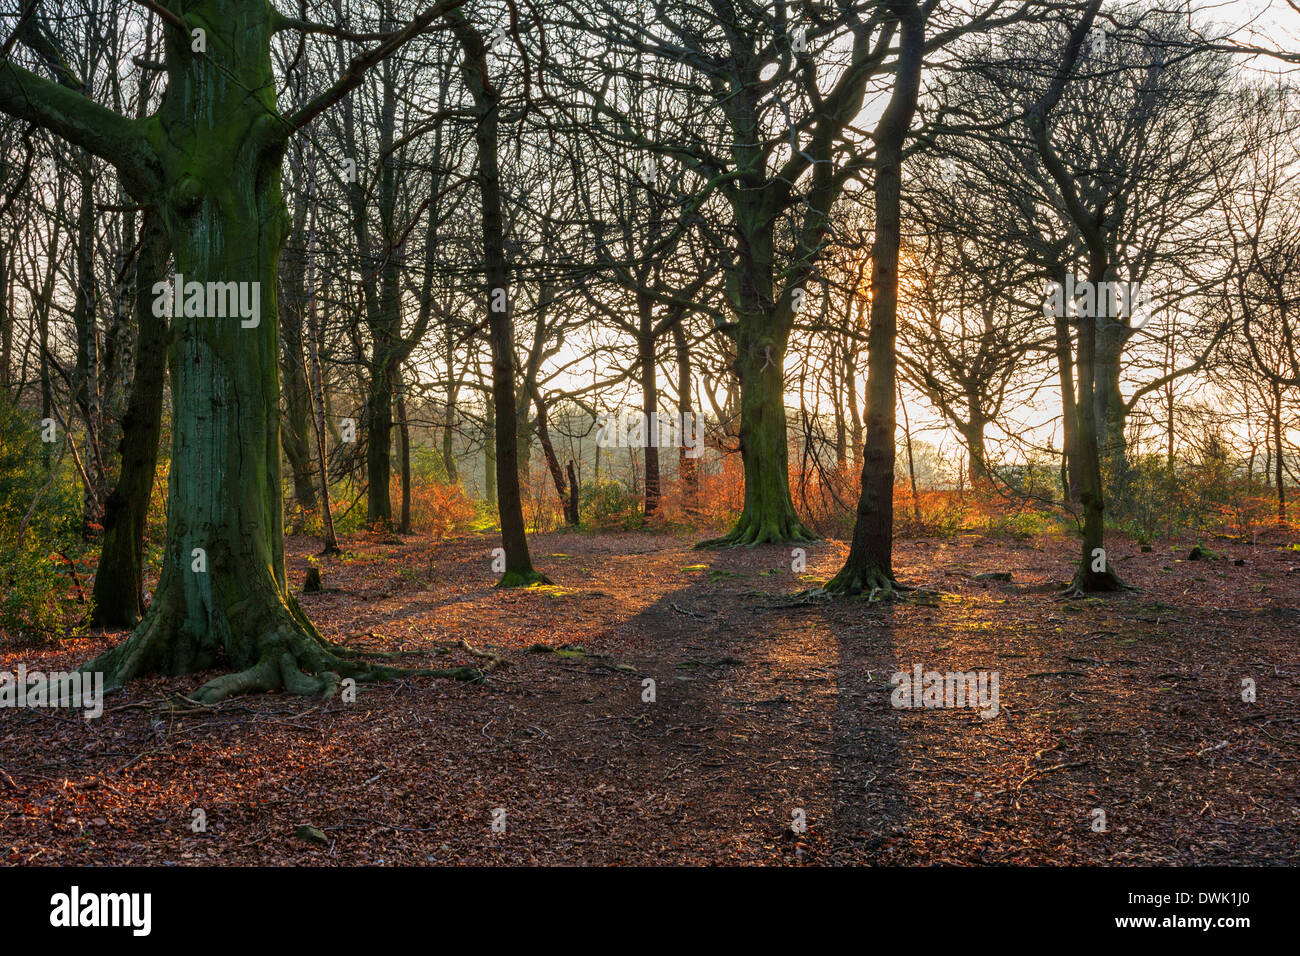 Woods on a public footpath near Holmfirth in the late afternoon sun, Holme Valley, West Yorkshire, England, UK - Stock Image